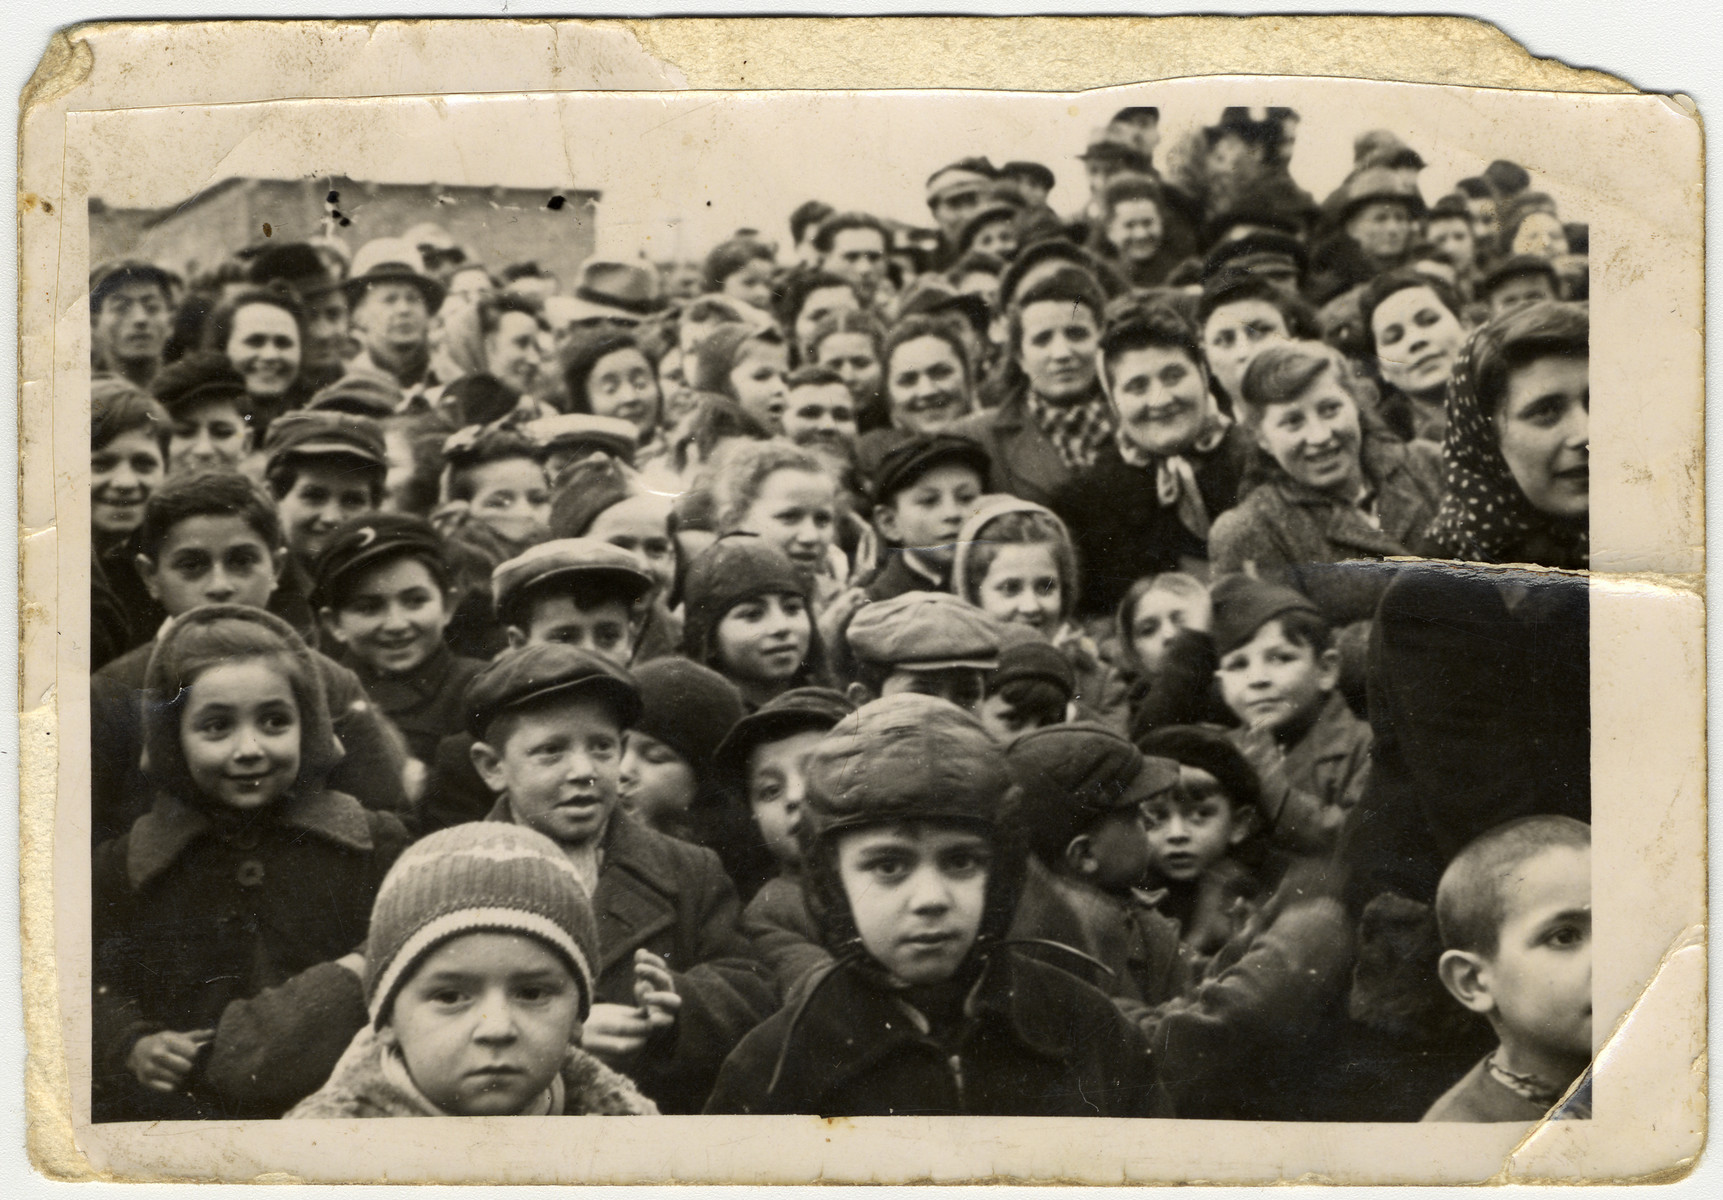 A large group of children and adults crowds together in the Zeilsheim displaced persons' camp.  Henik Minuskin is at the bottom, wearing a Russian pilot's hat.